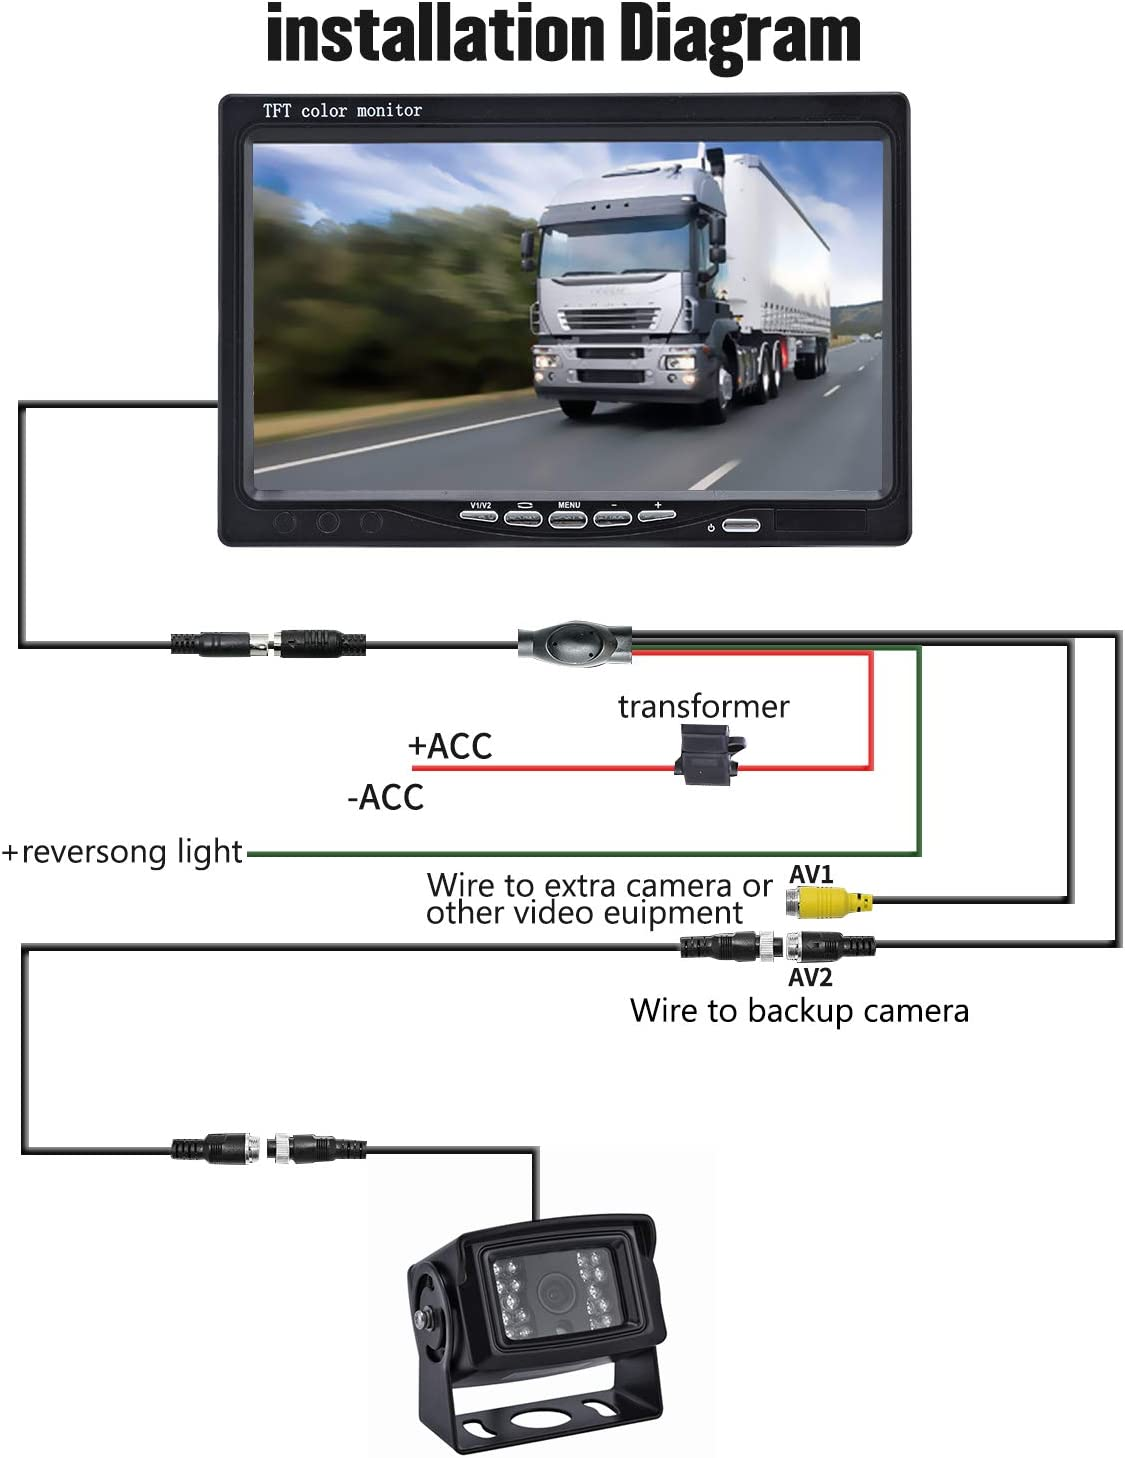 Car Rearview Monitor,OHMOTOR 7 LED Backlight HD 800x480 with TFT LCD Monitor for Car Commercial Vehicles Trucks 7 Car Monitor